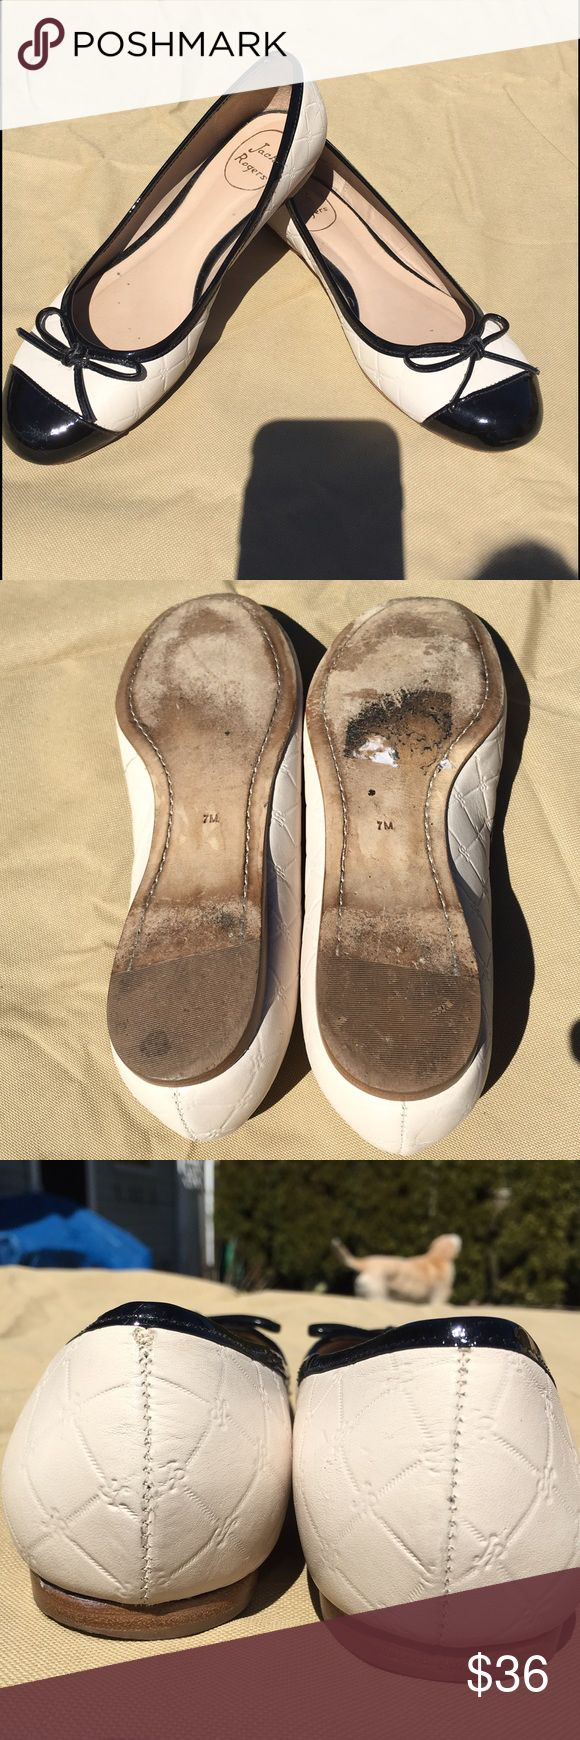 """Jack Rogers ballet flats Gorgeous Jack Rogers quilted leather """"lively"""" flats. Excellent condition. Leather soles. Jack Rogers Shoes Flats & Loafers"""